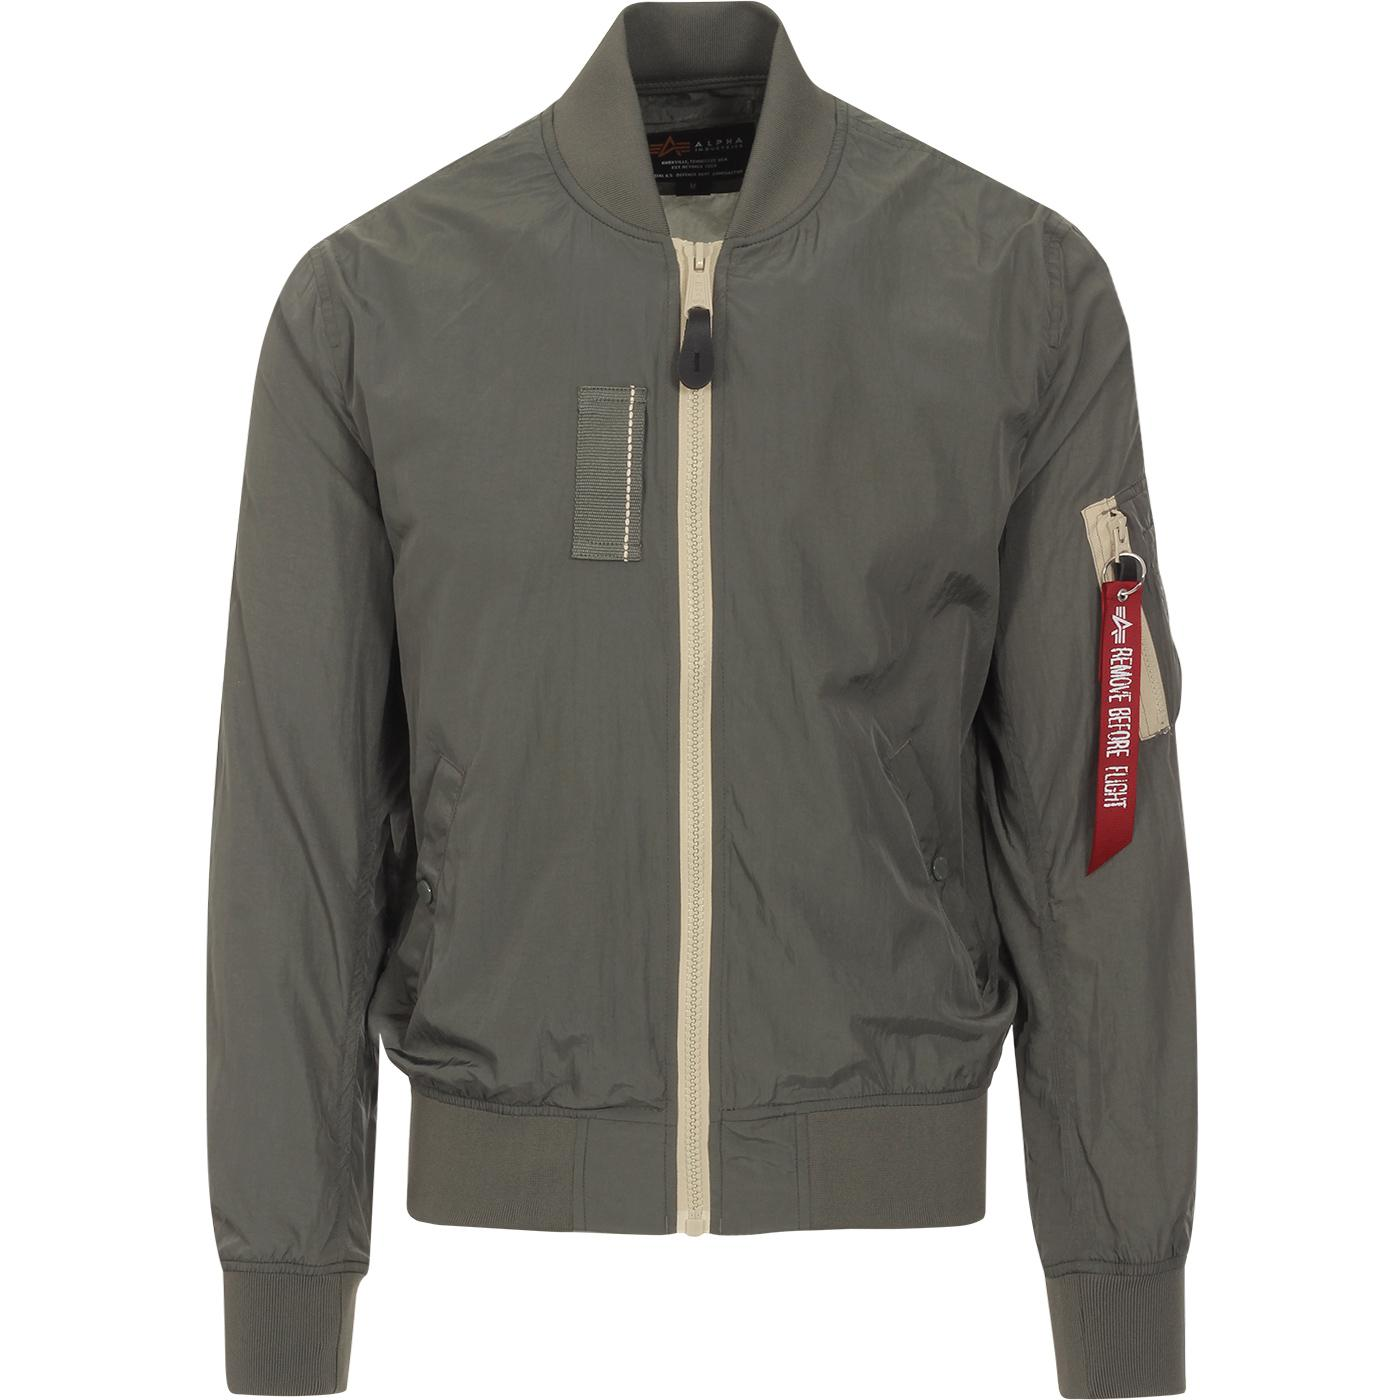 ALPHA INDUSTRIES MA-1 SL Light Bomber Jacket (VG)